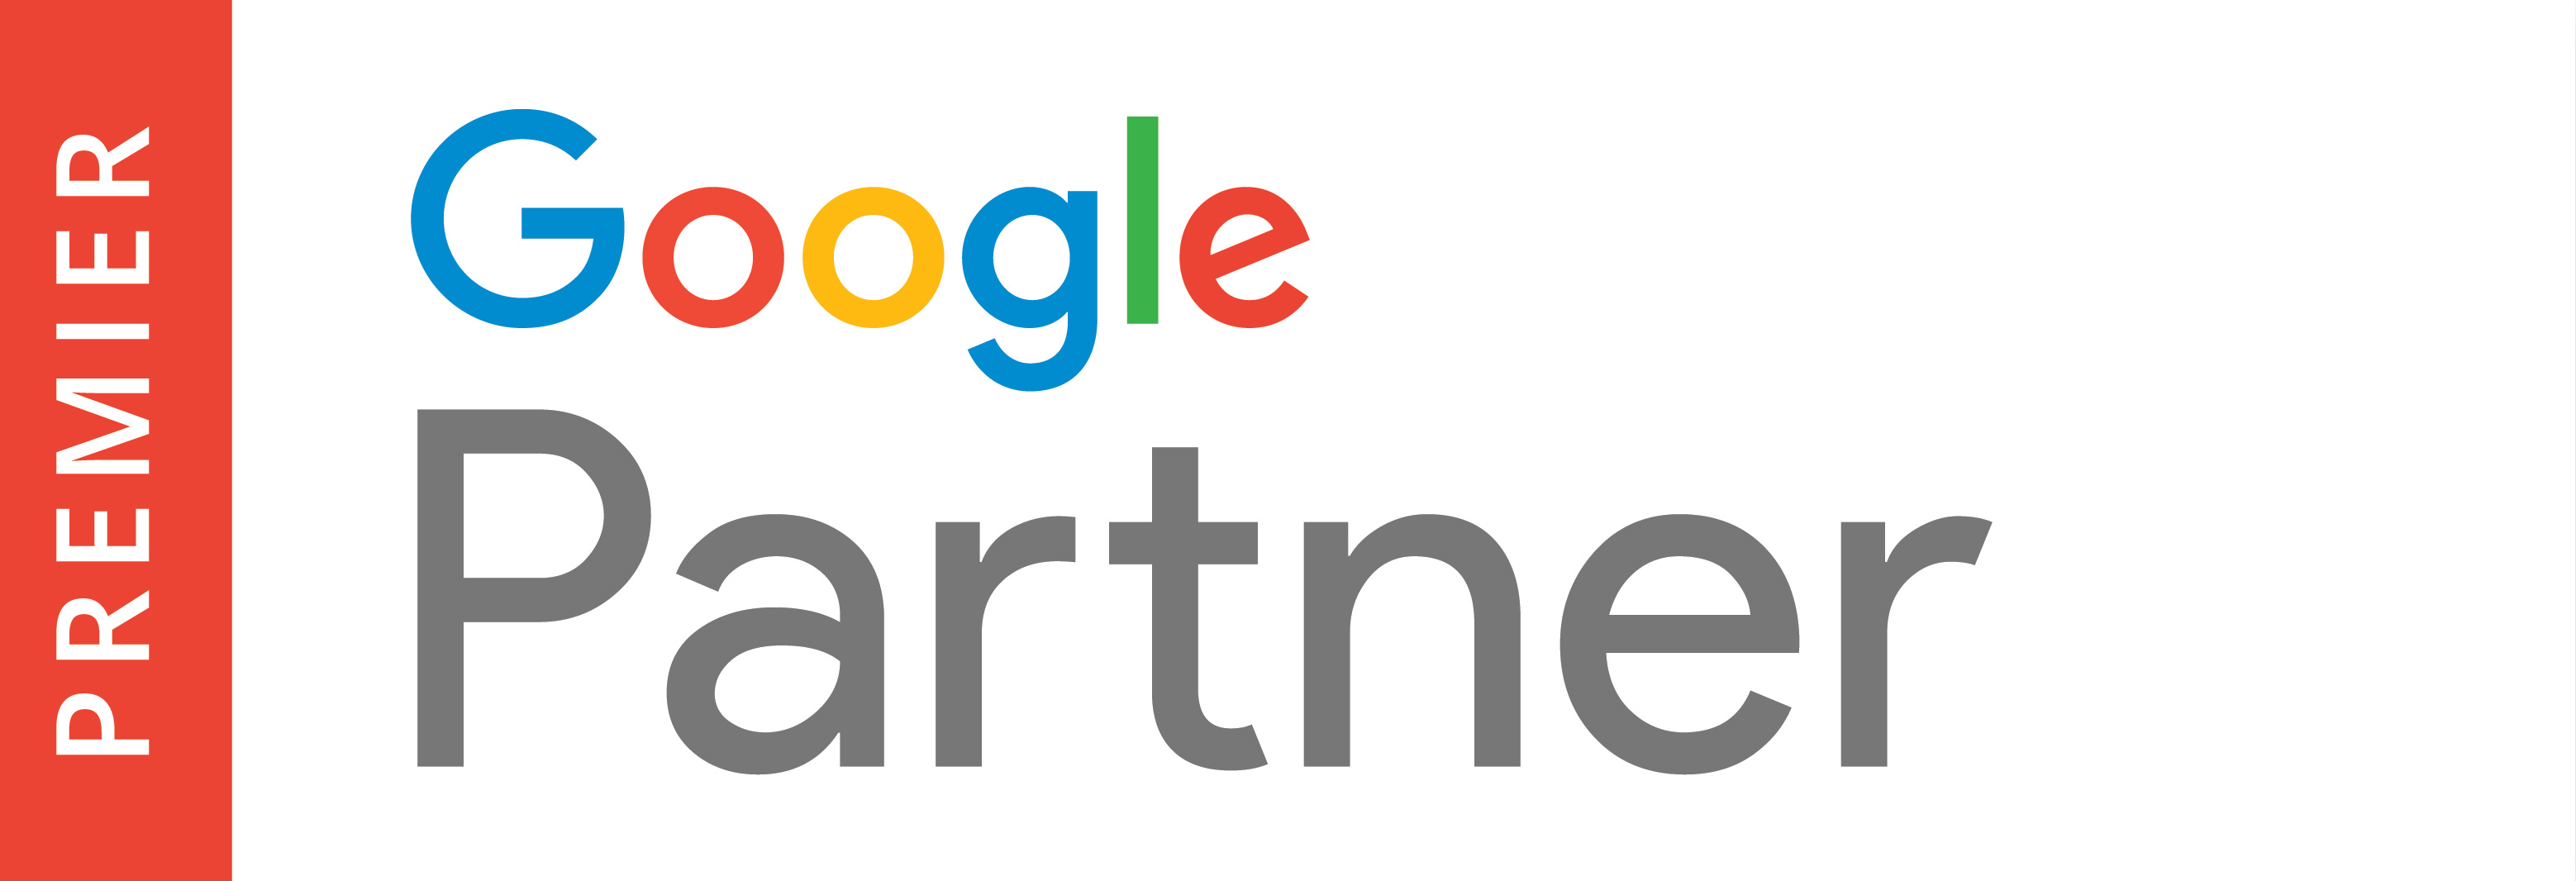 Websem - Premier Google Partner